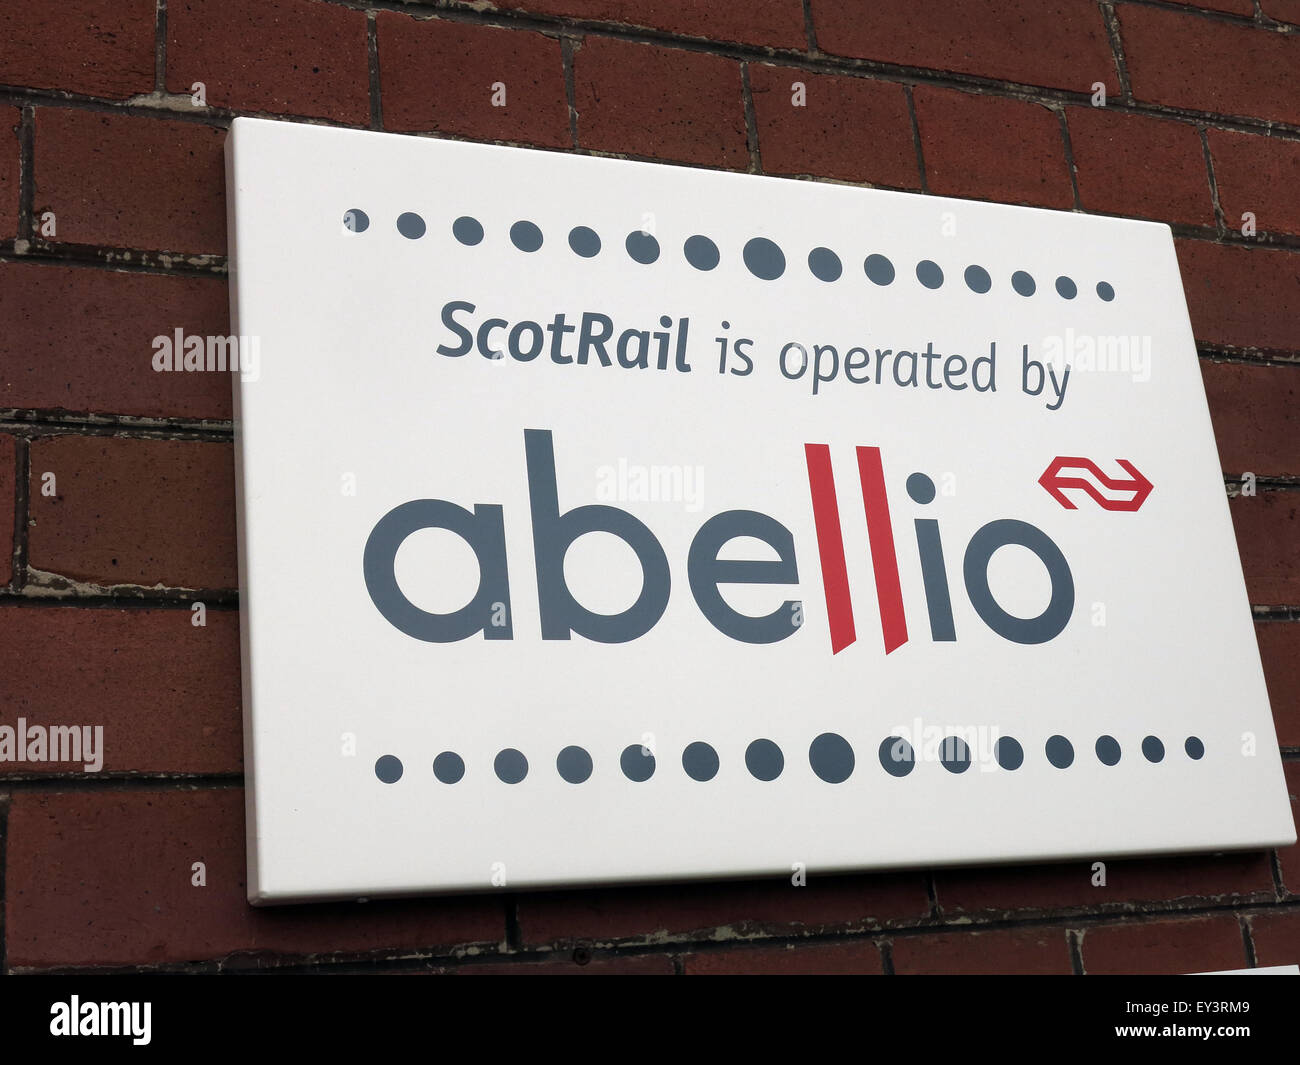 train,line,track,platform,Scotrail,Scot,rail,Abellio,transport,co,company,Ned,Nedrailways,privatised,subsidy,subsidised,network,Dutch,national,operator,Nederlandse,Spoorwegen,Serco-Abellio,Serco,GB,Great,Britain,British,BR,Station Road,Annan,Dumfries and Galloway,Scotland,UK,GoTonySmith,operated,by,Abelio,poor,service,battle,with,Scotish,Scottish,Parliament,Govt,Government,political,pressure,mounts,2025,Alba,Abellio,transport,operator,Dutch,company,performance,late,fined,delay,delays,regulation,strip,viable,delay,delays,delayed.late,later,Buy Pictures of,Buy Images Of,Franchise Battle,political pressure,transport operator Abellio,Humza Yousaf,Rail passengers,public sector bid